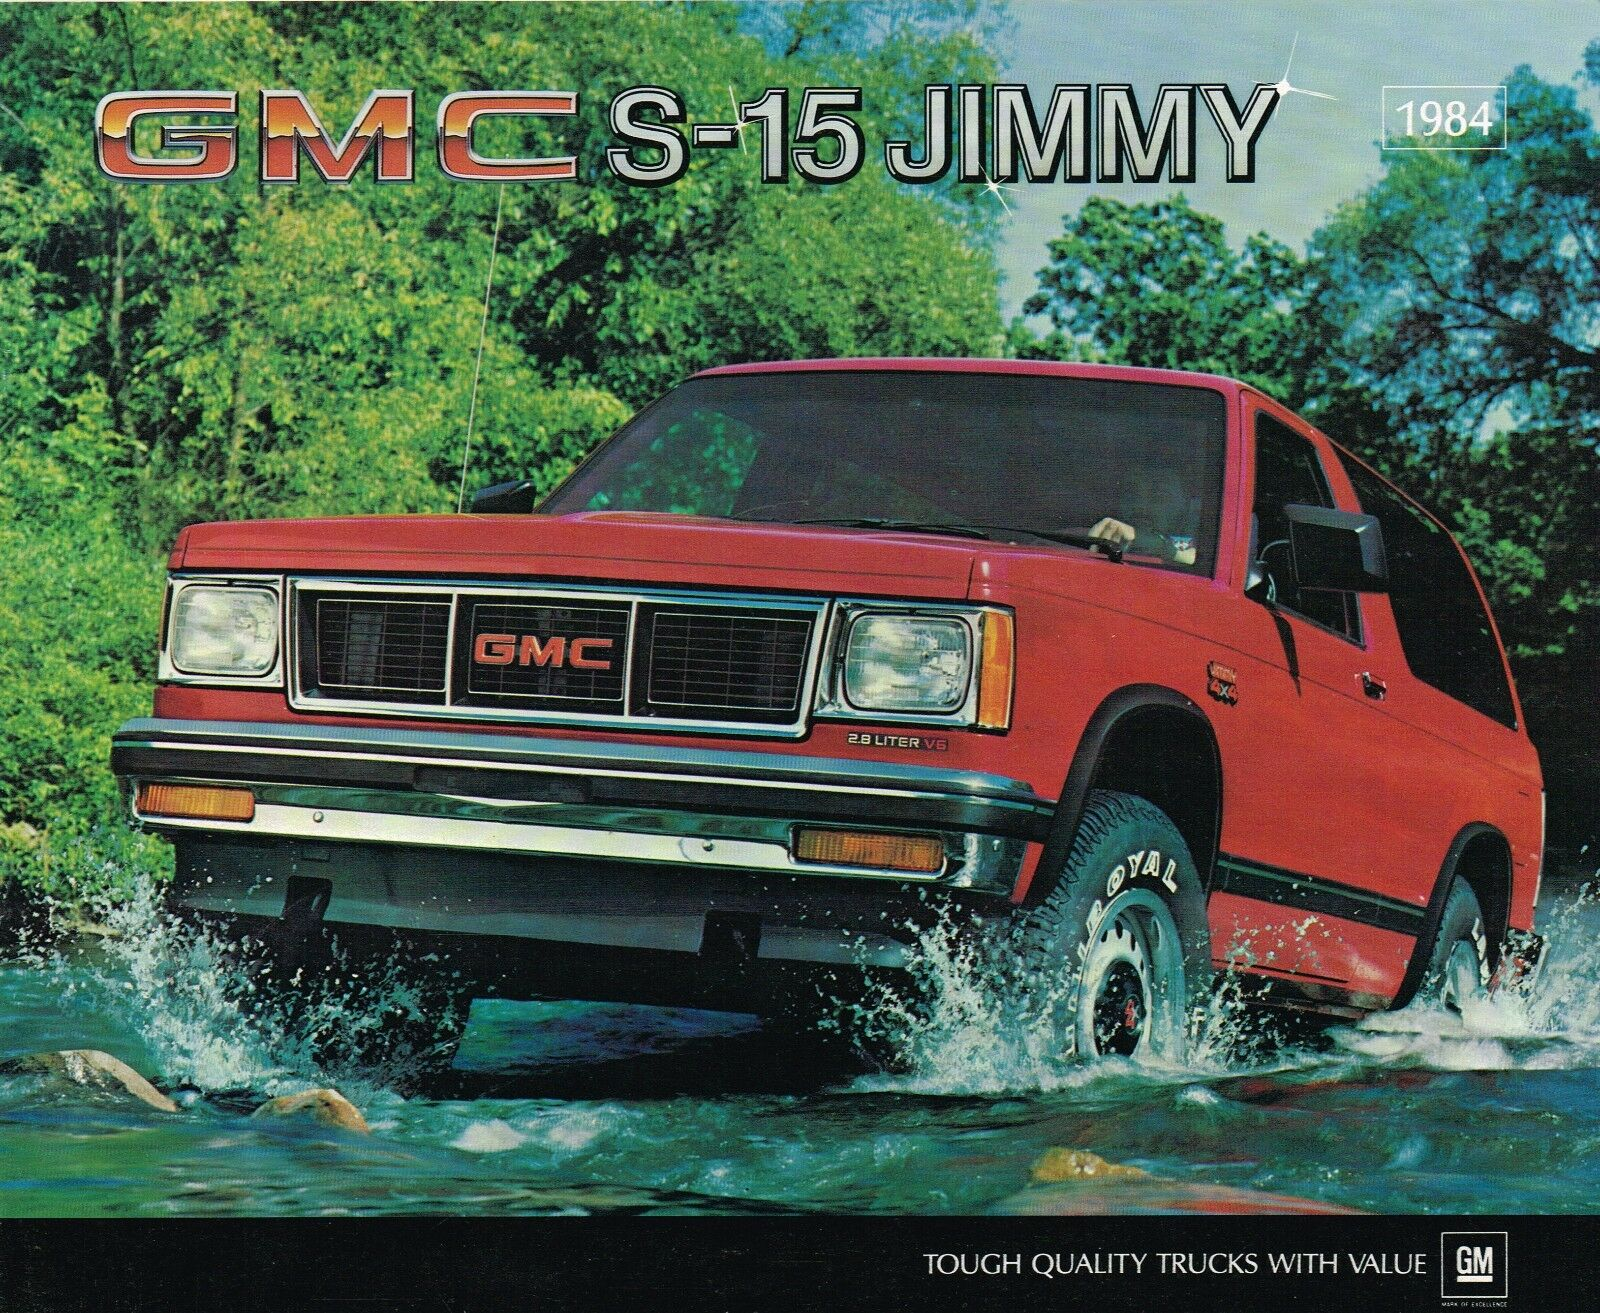 1984 GMC TRUCK JIMMY S-15 Brochure / Catalog w/ Color Chart:  S15,2WD,4WD,SIERRA, • $11 95